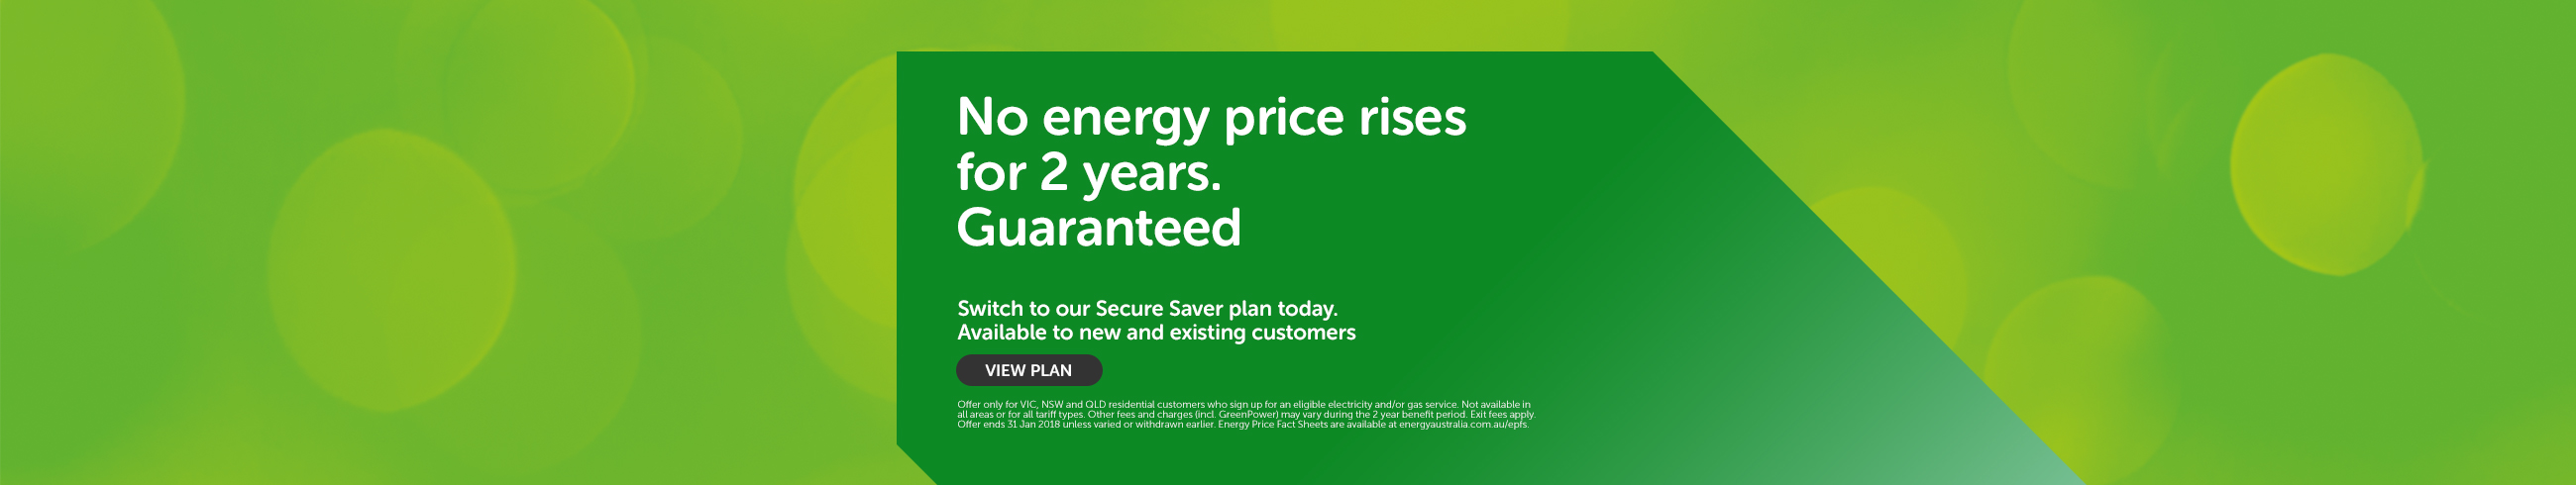 No energy price rises for 2 years. Guaranteed